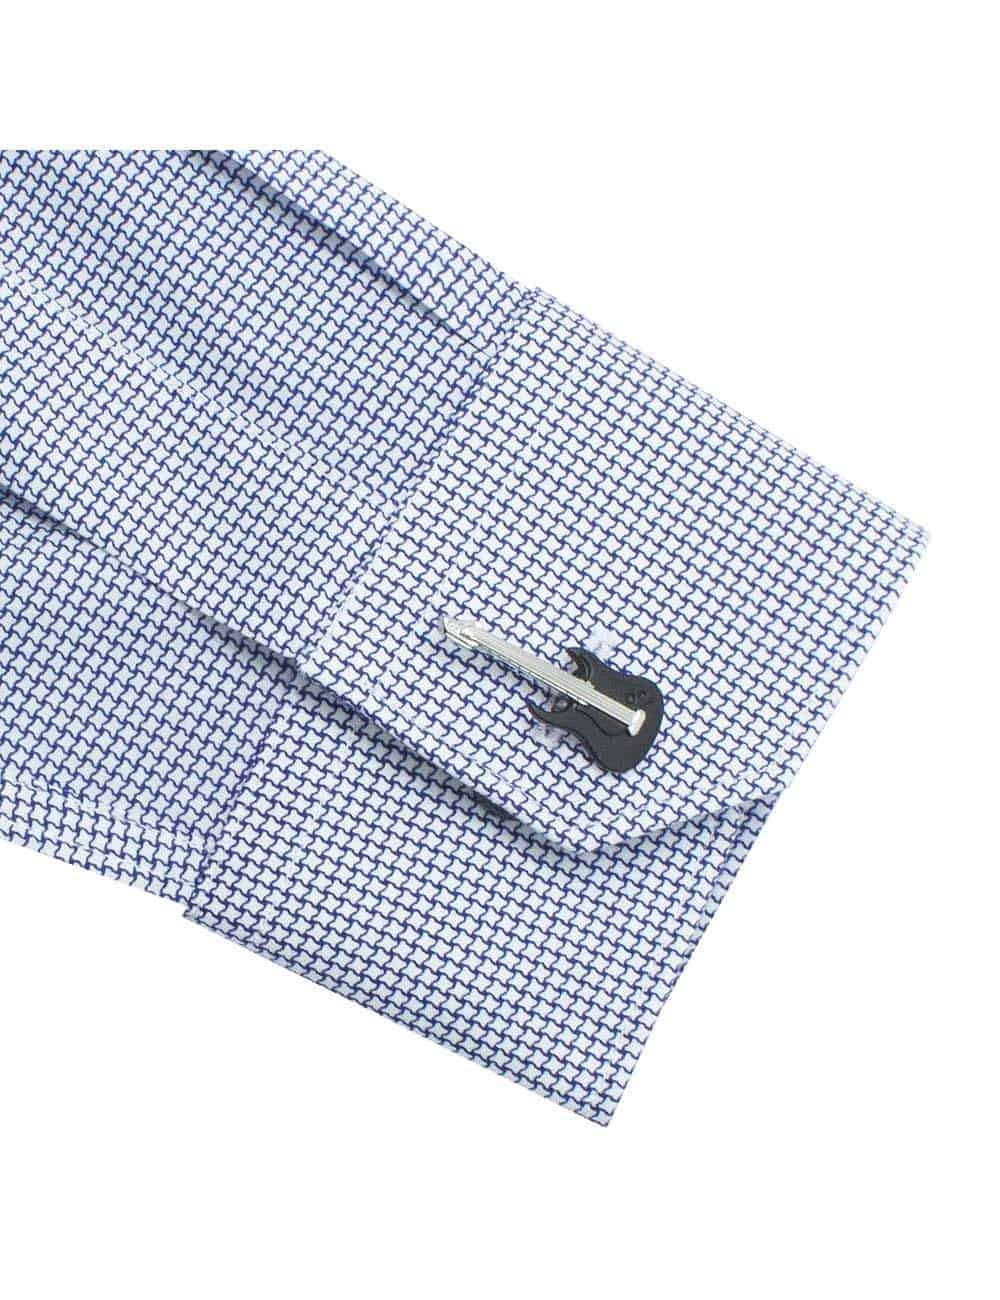 Tailored Fit White with Navy Print Long Sleeve Shirt TF2A13.17